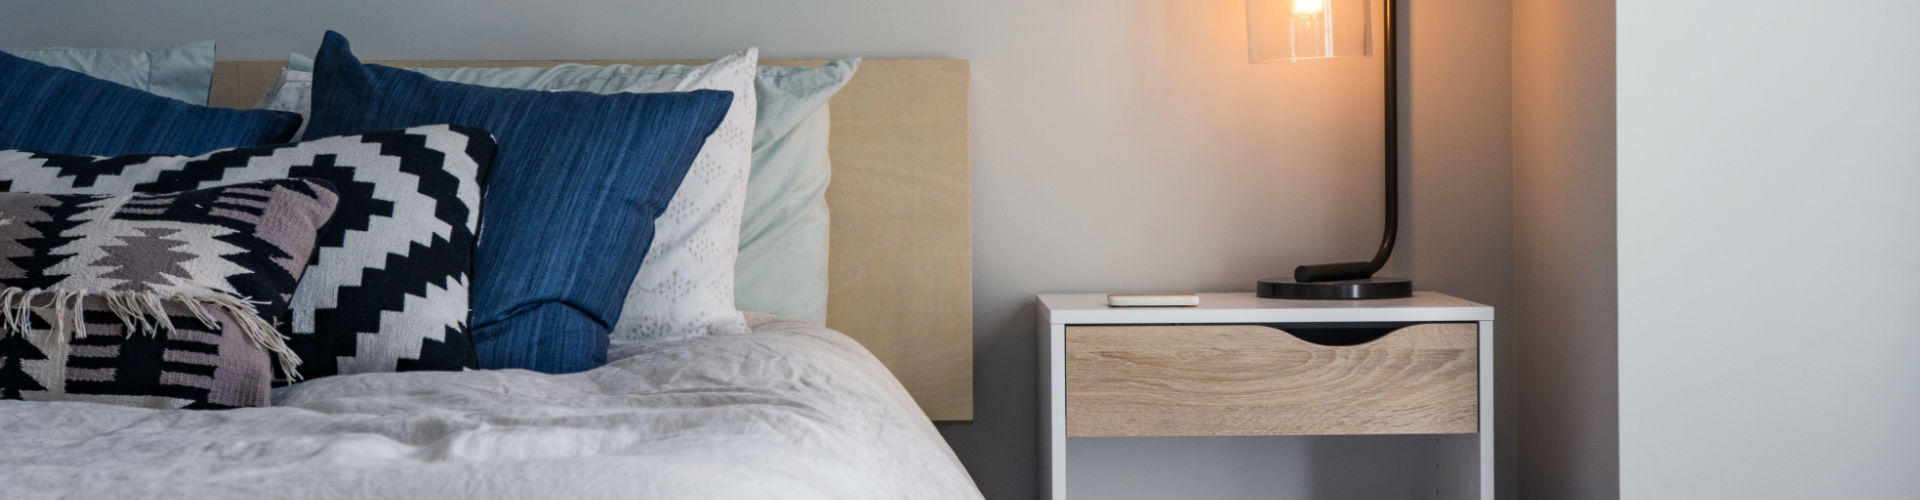 11 Best products to have on your nightstand » Gadget Flow